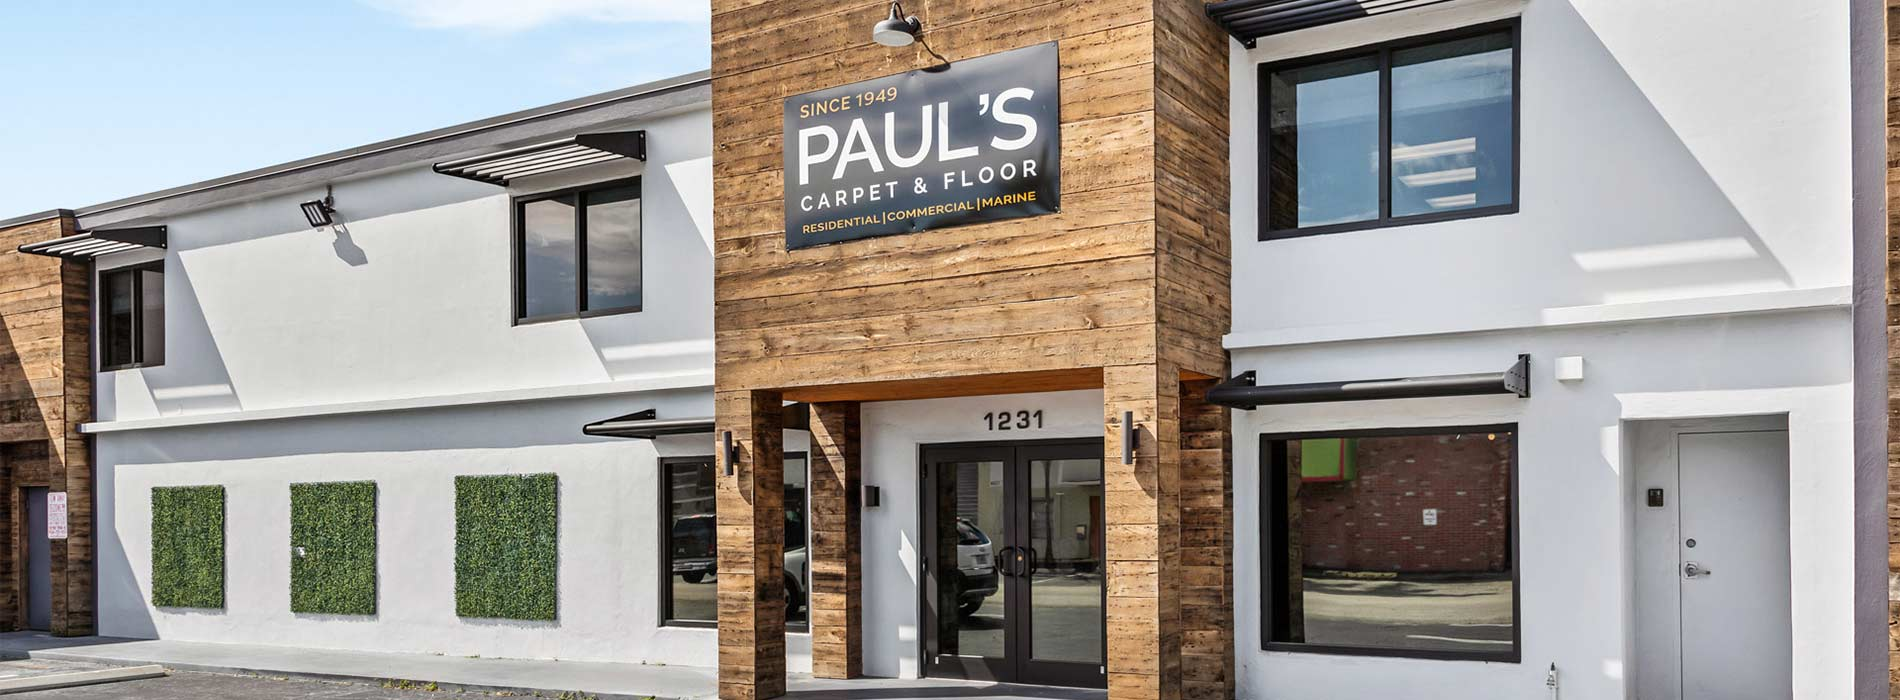 Paul's Carpet & Floor - Residential | Commercial | Marine - Since 1949